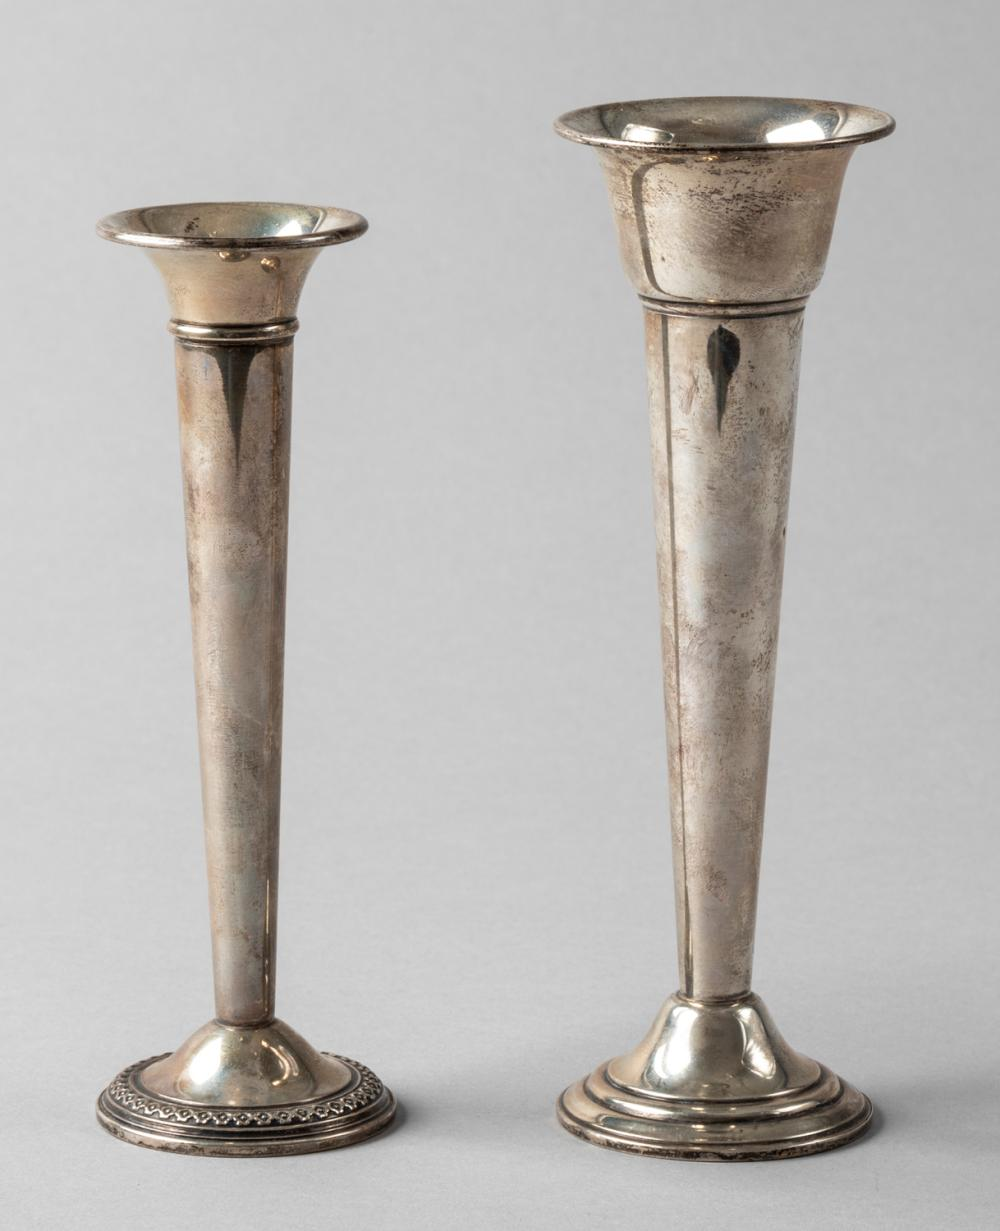 Two Sterling Silver Bud Vases